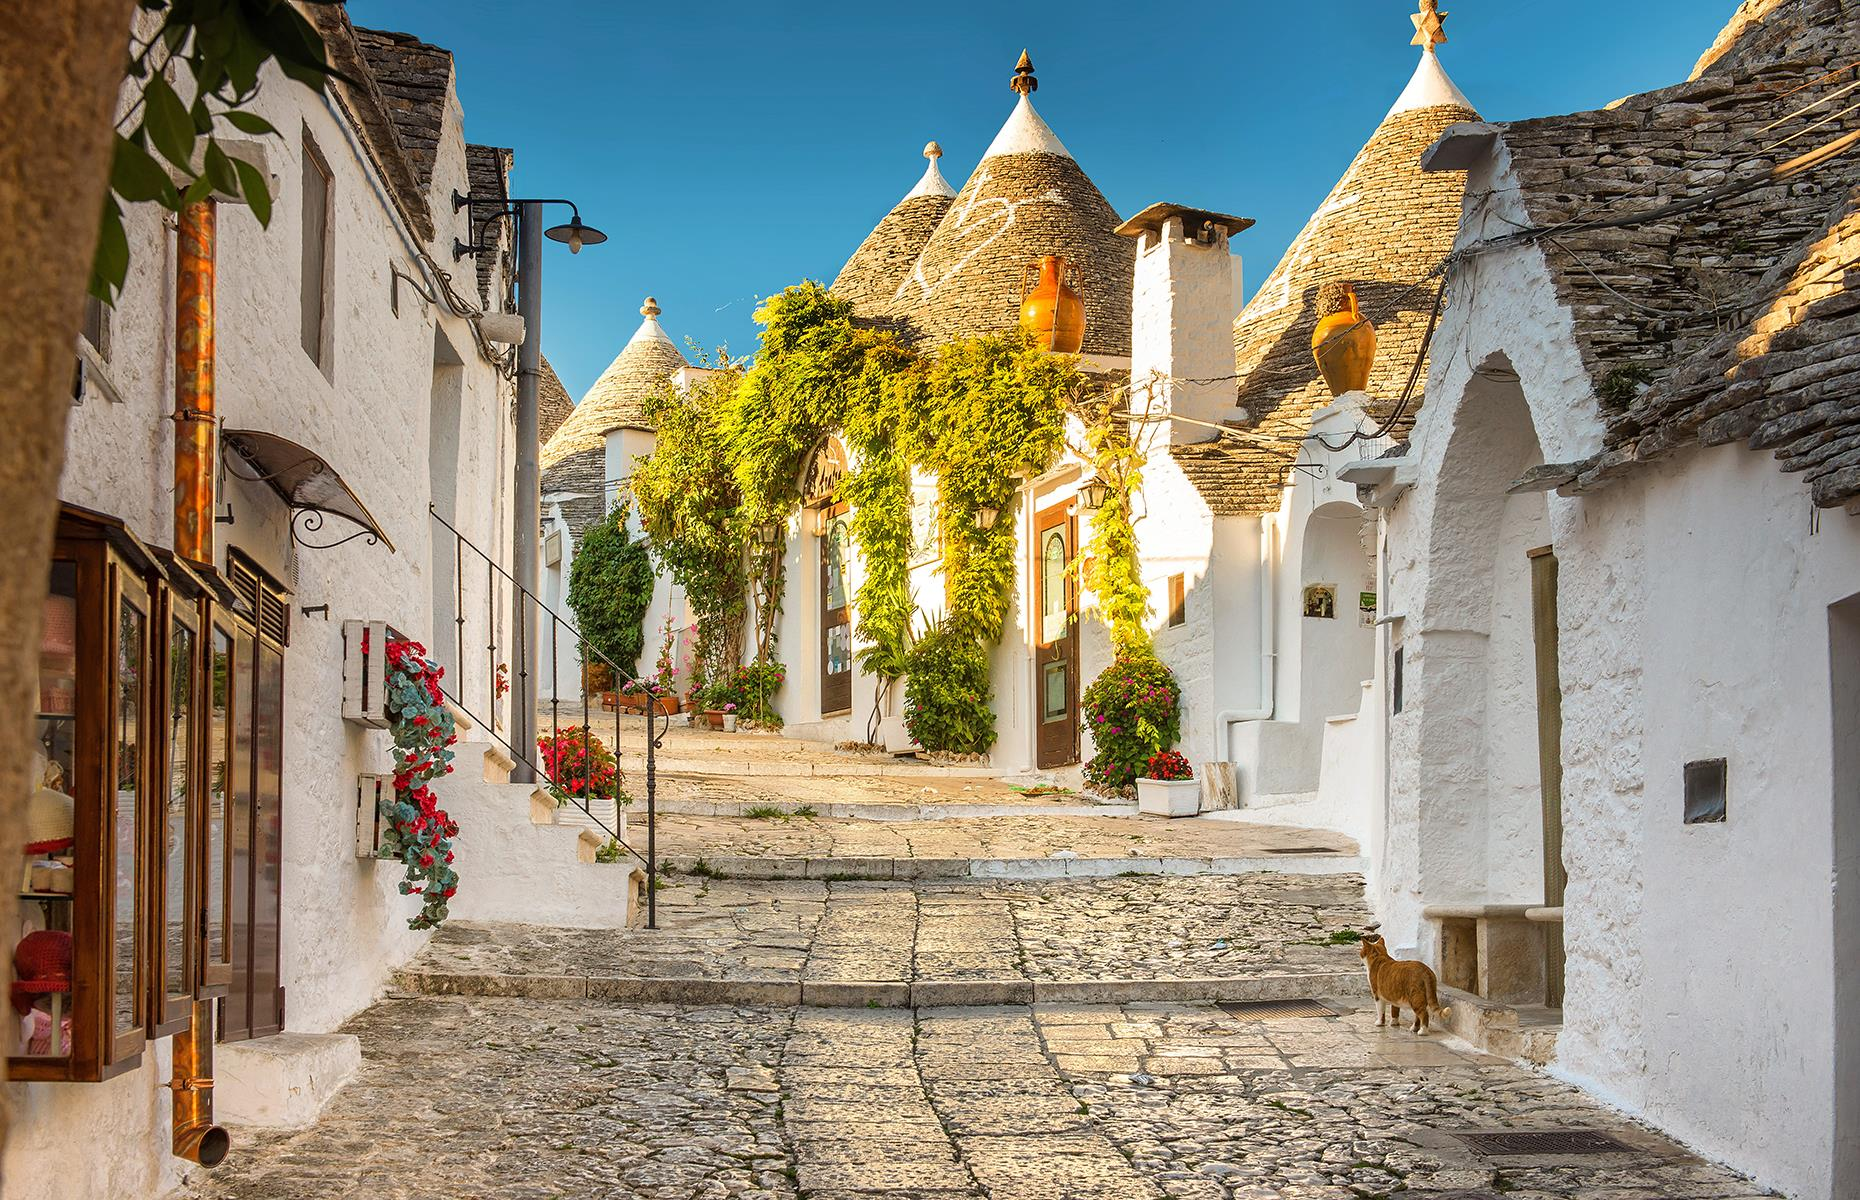 Slide 9 of 31: It's simply impossible not to find a picture-perfect street in Alberobello, a UNESCO World Heritage Site in its entirety. The small town in Italy's heel – Puglia – is famous for its unusual trulli homes, built from white-washed local limestone, with a characteristic conical rooves. The prettiest streets are in the historical heart of the town. Rione Monti is the more commercialized side with plenty of hotels, restaurants and shops, while Rione Aia Piccola is much quieter and still largely residential.